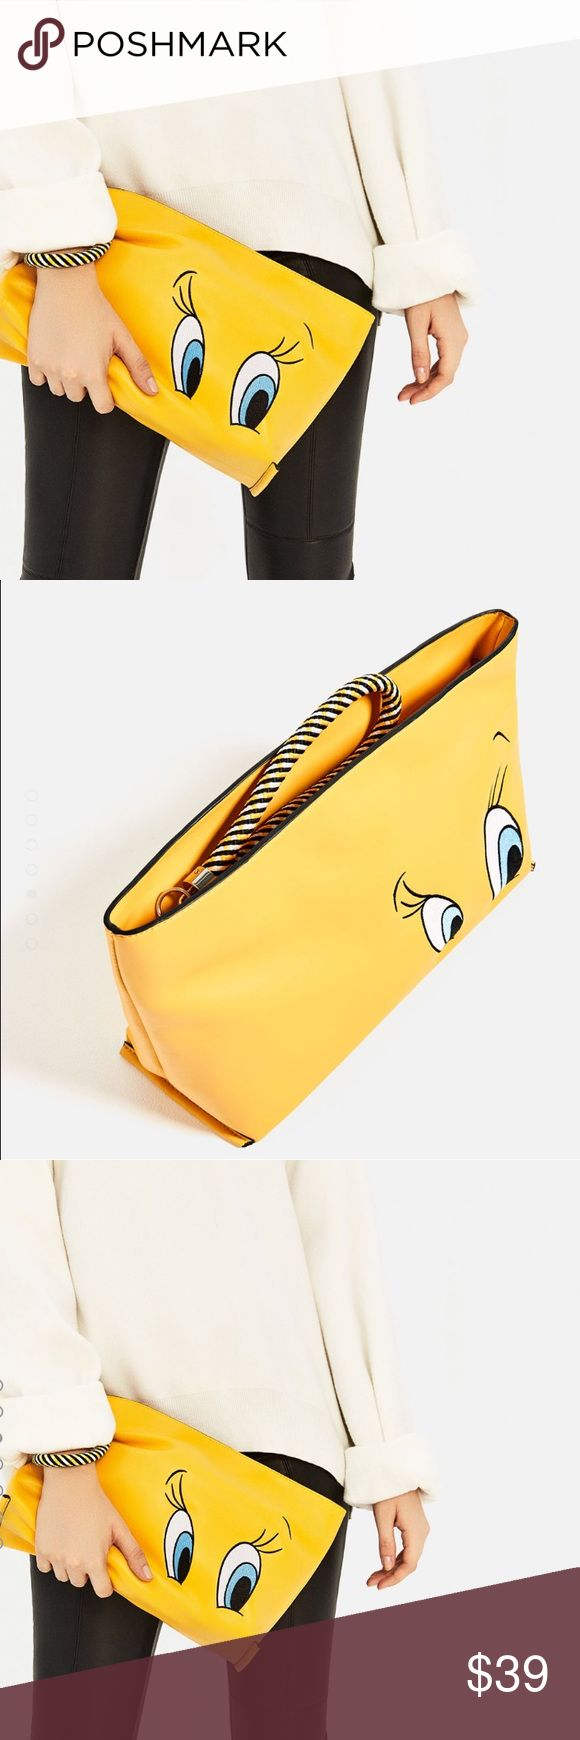 Zara tweety clutch Brand new with tag Zara tweety clutch in size M. Currently sold out in stores and online ! Great with every outfit ! It's such a fashion statement !! Add a pop of color to your outfit ! 😡NO TRADE 😡 (fits a pair of flats) reasonable offers welcome Zara Bags